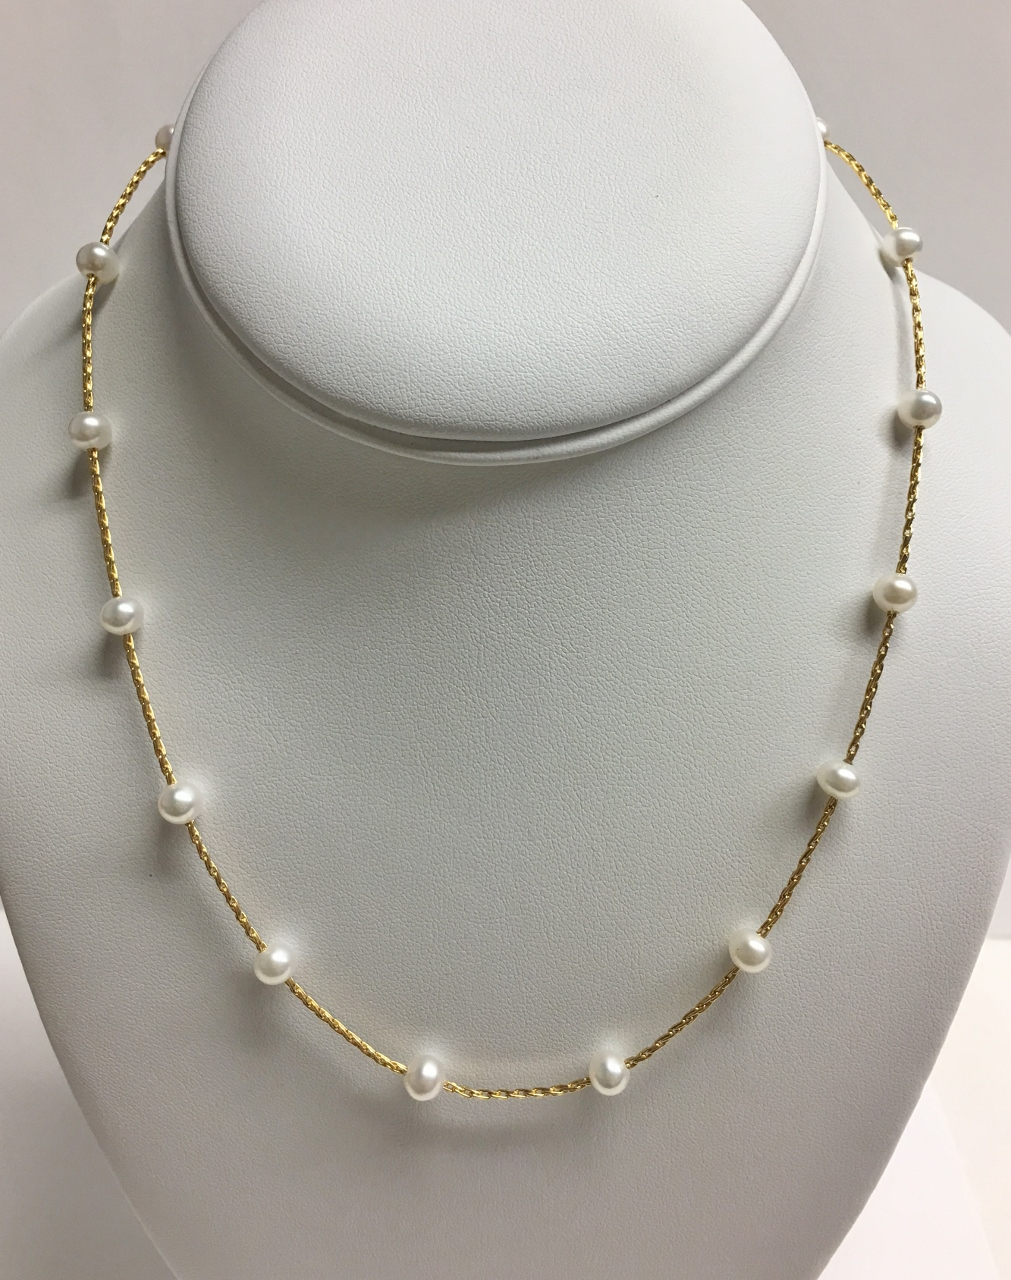 Station Pearl Necklace In Yellow Gold